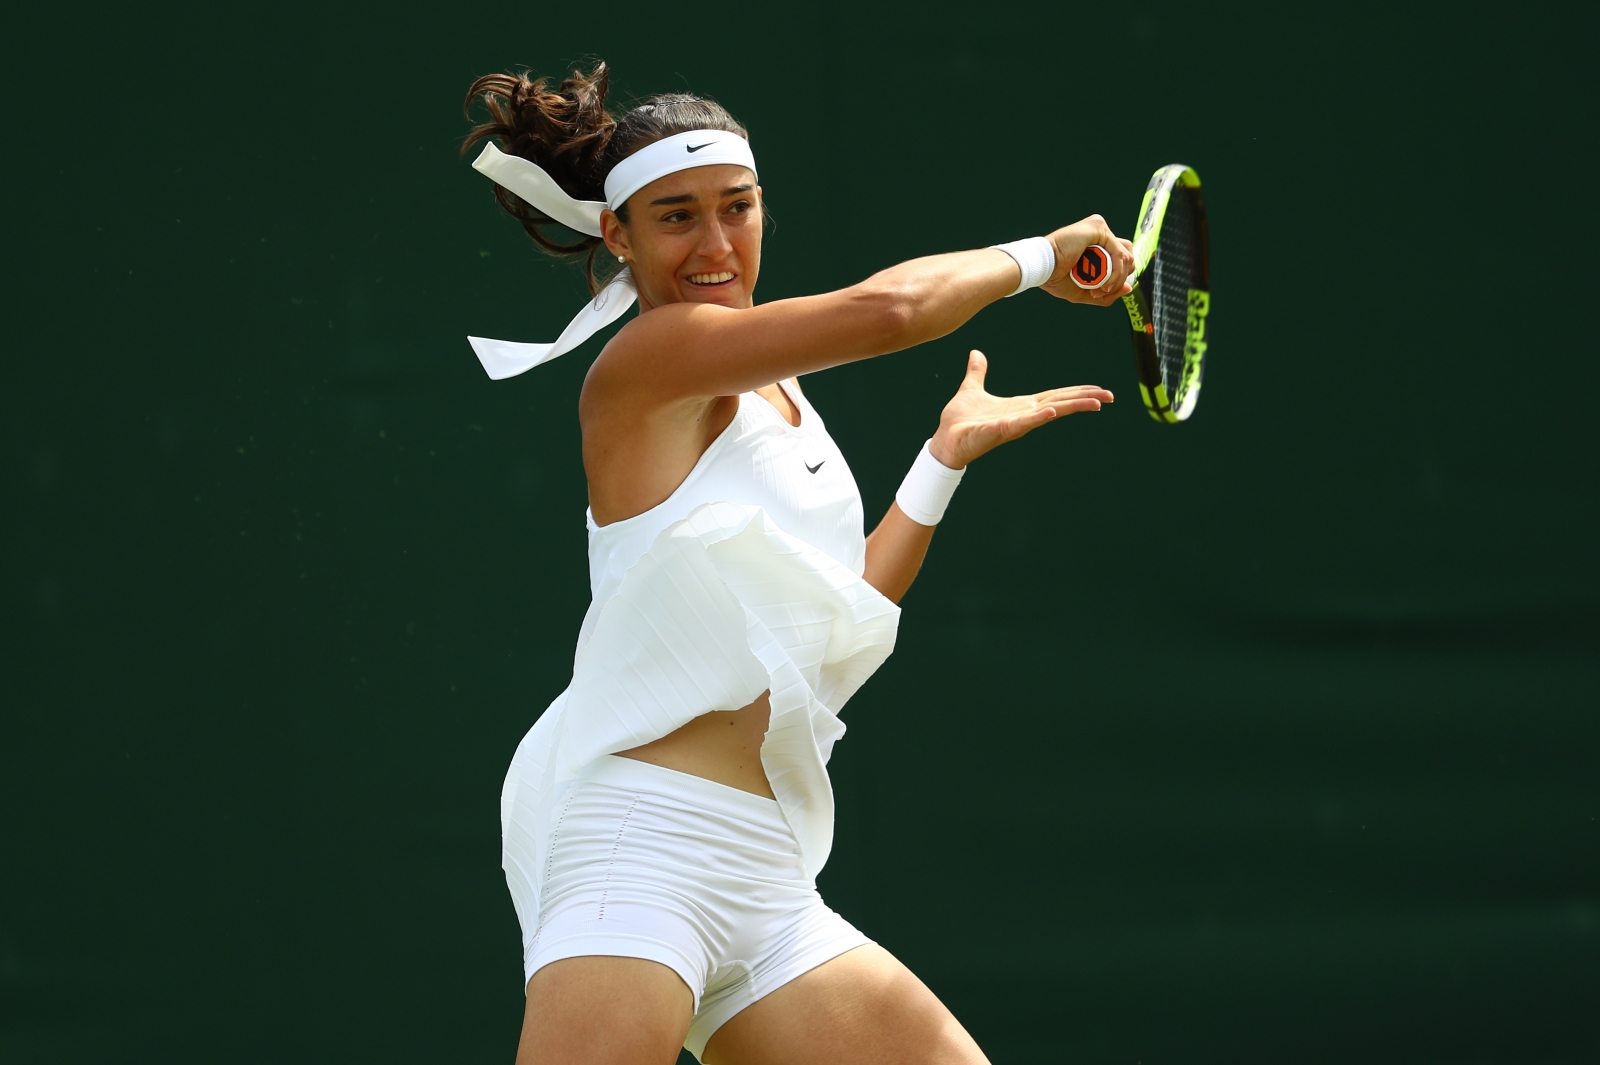 Wimbledon 2016: Nike's impractical designs are leaving the females ...